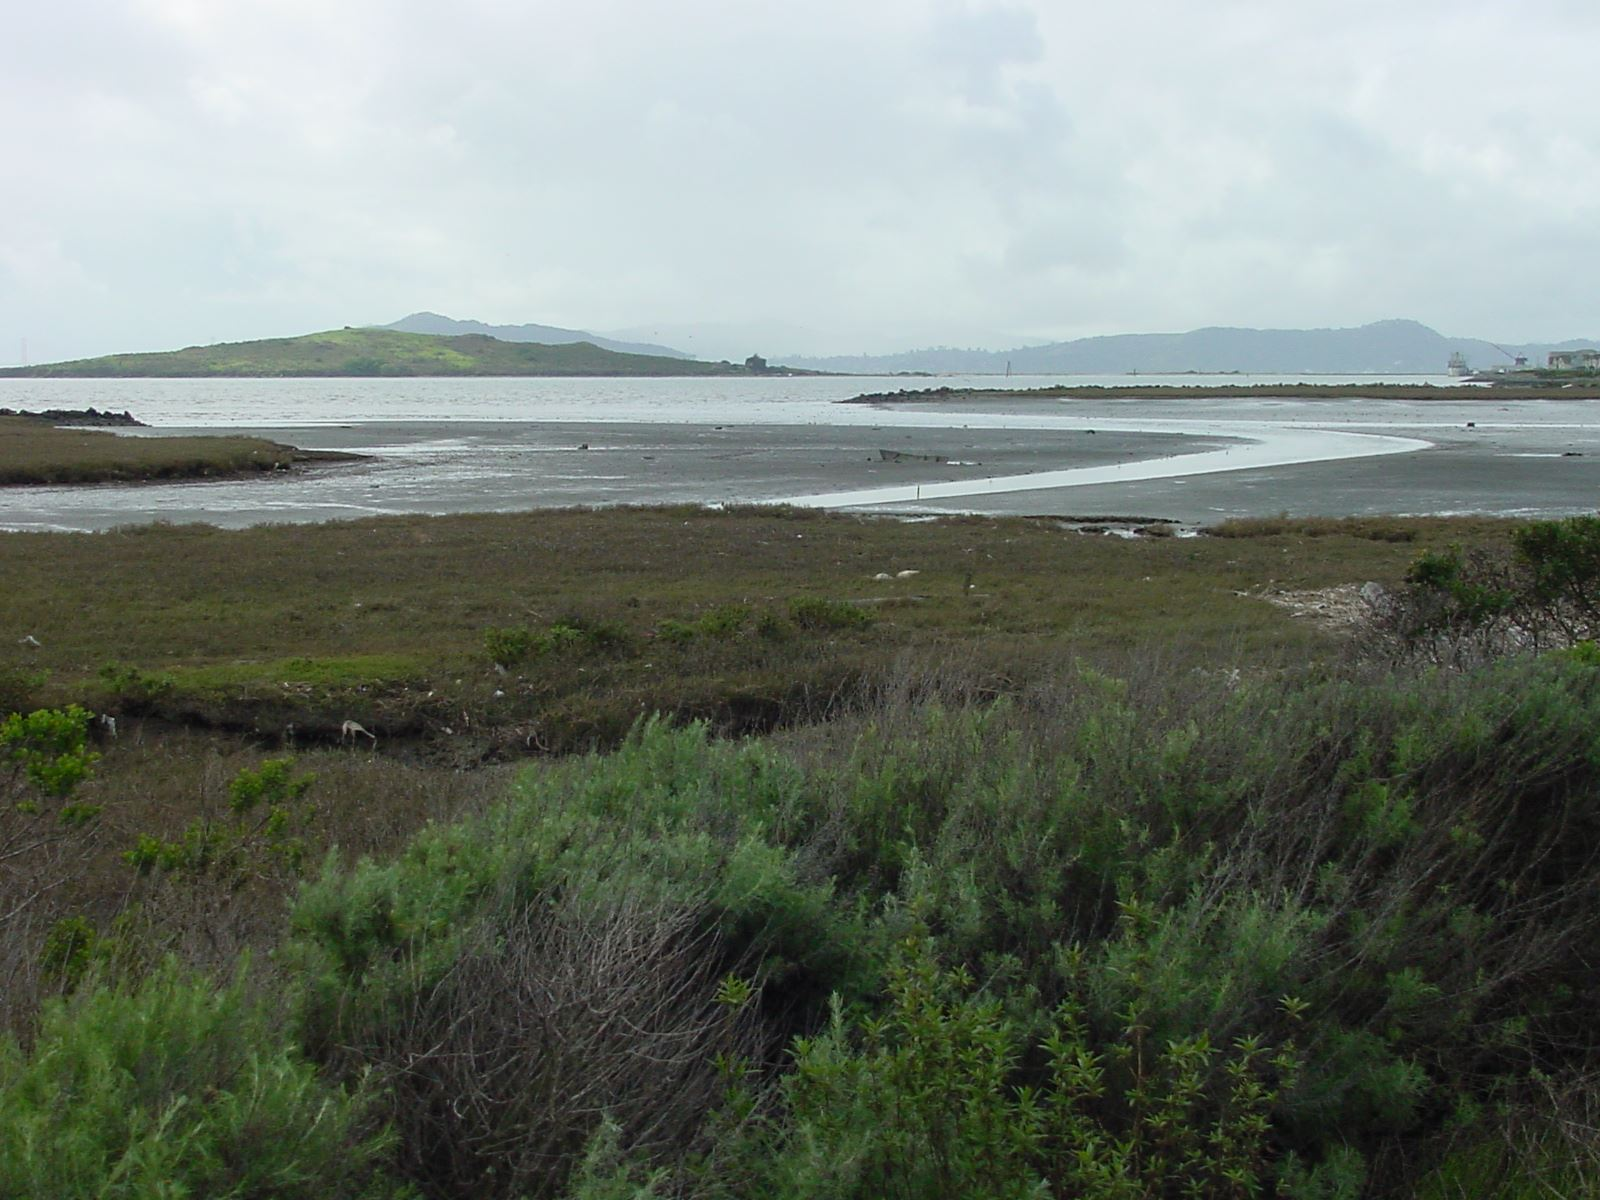 Mouth of Baxter Creek - green landscape with ponds